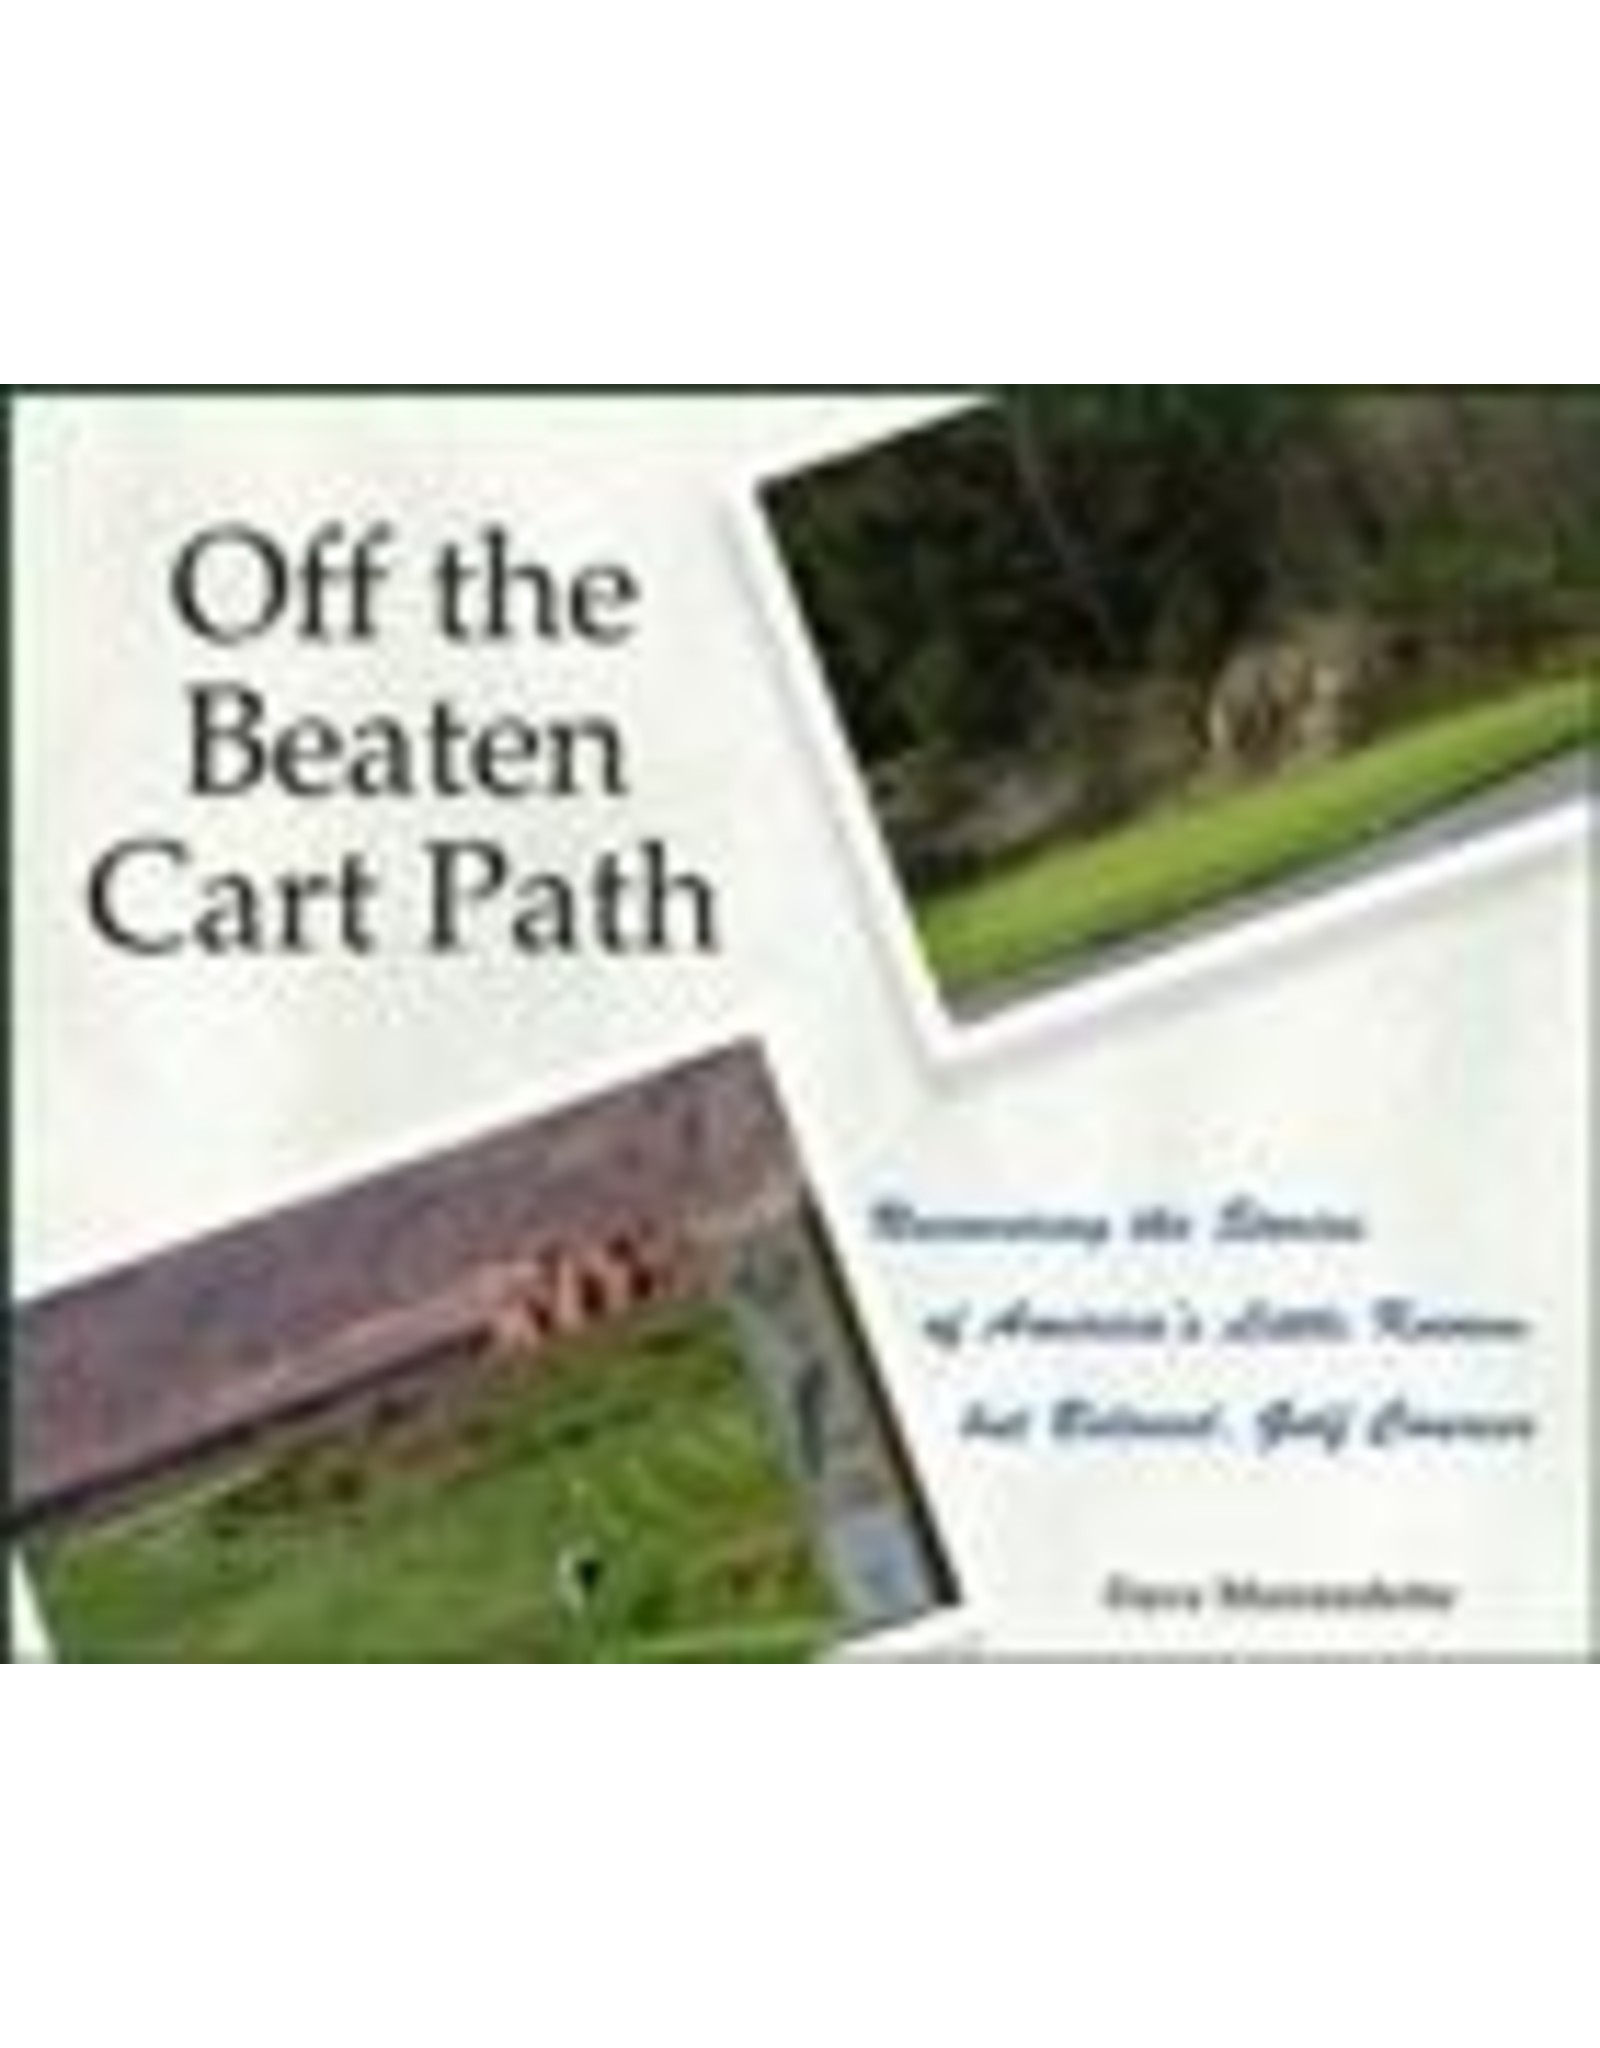 Off the Beaten Cart Path